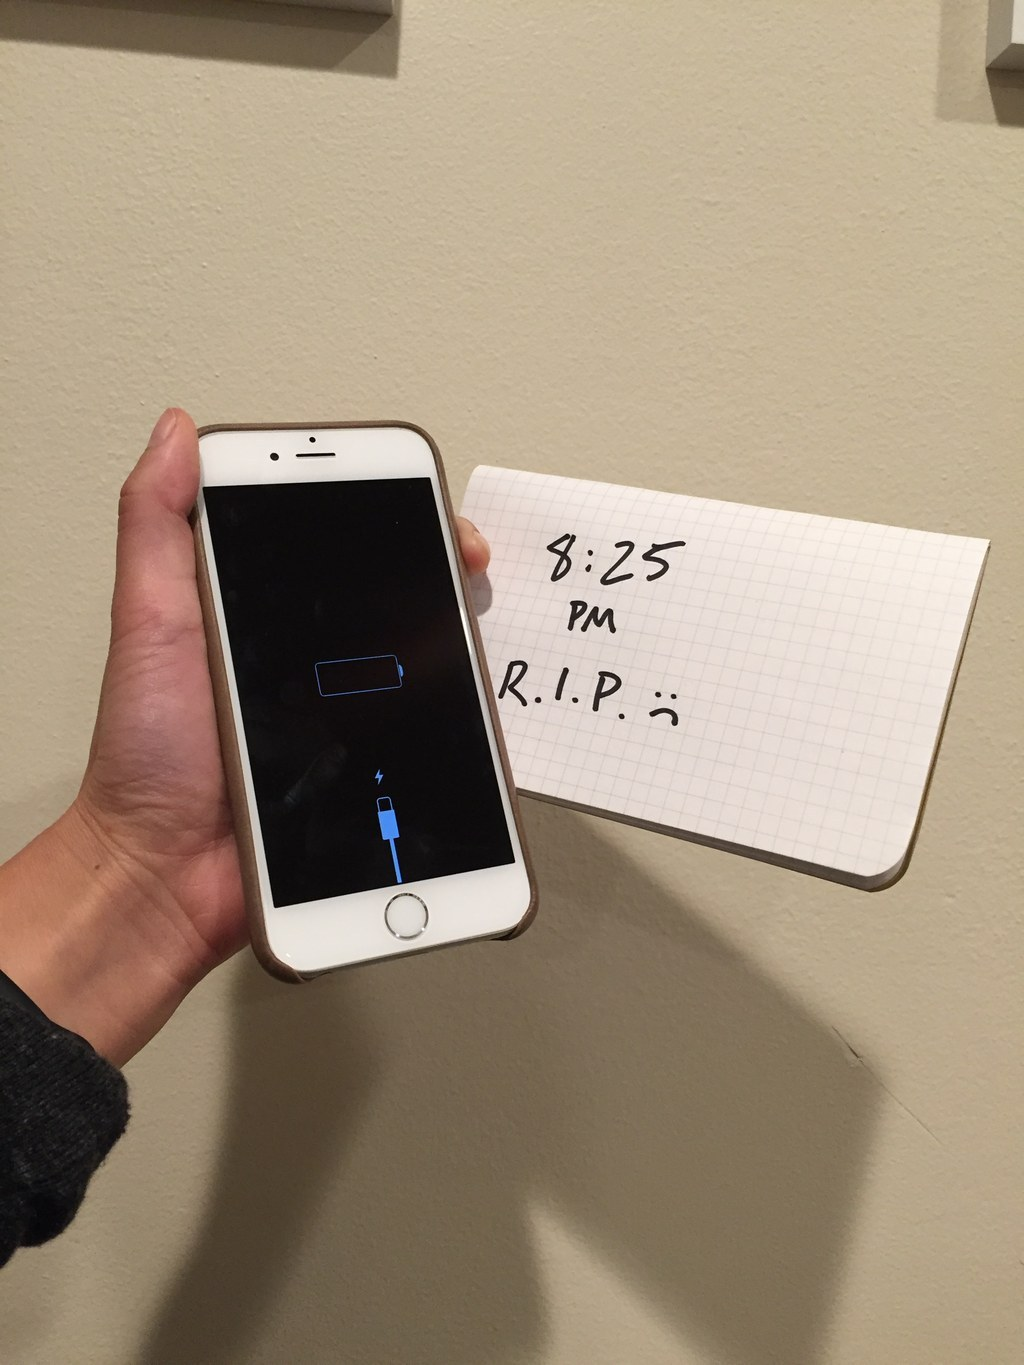 I Used The Crap Out Of The New iPhone 6s And This Is What Happened